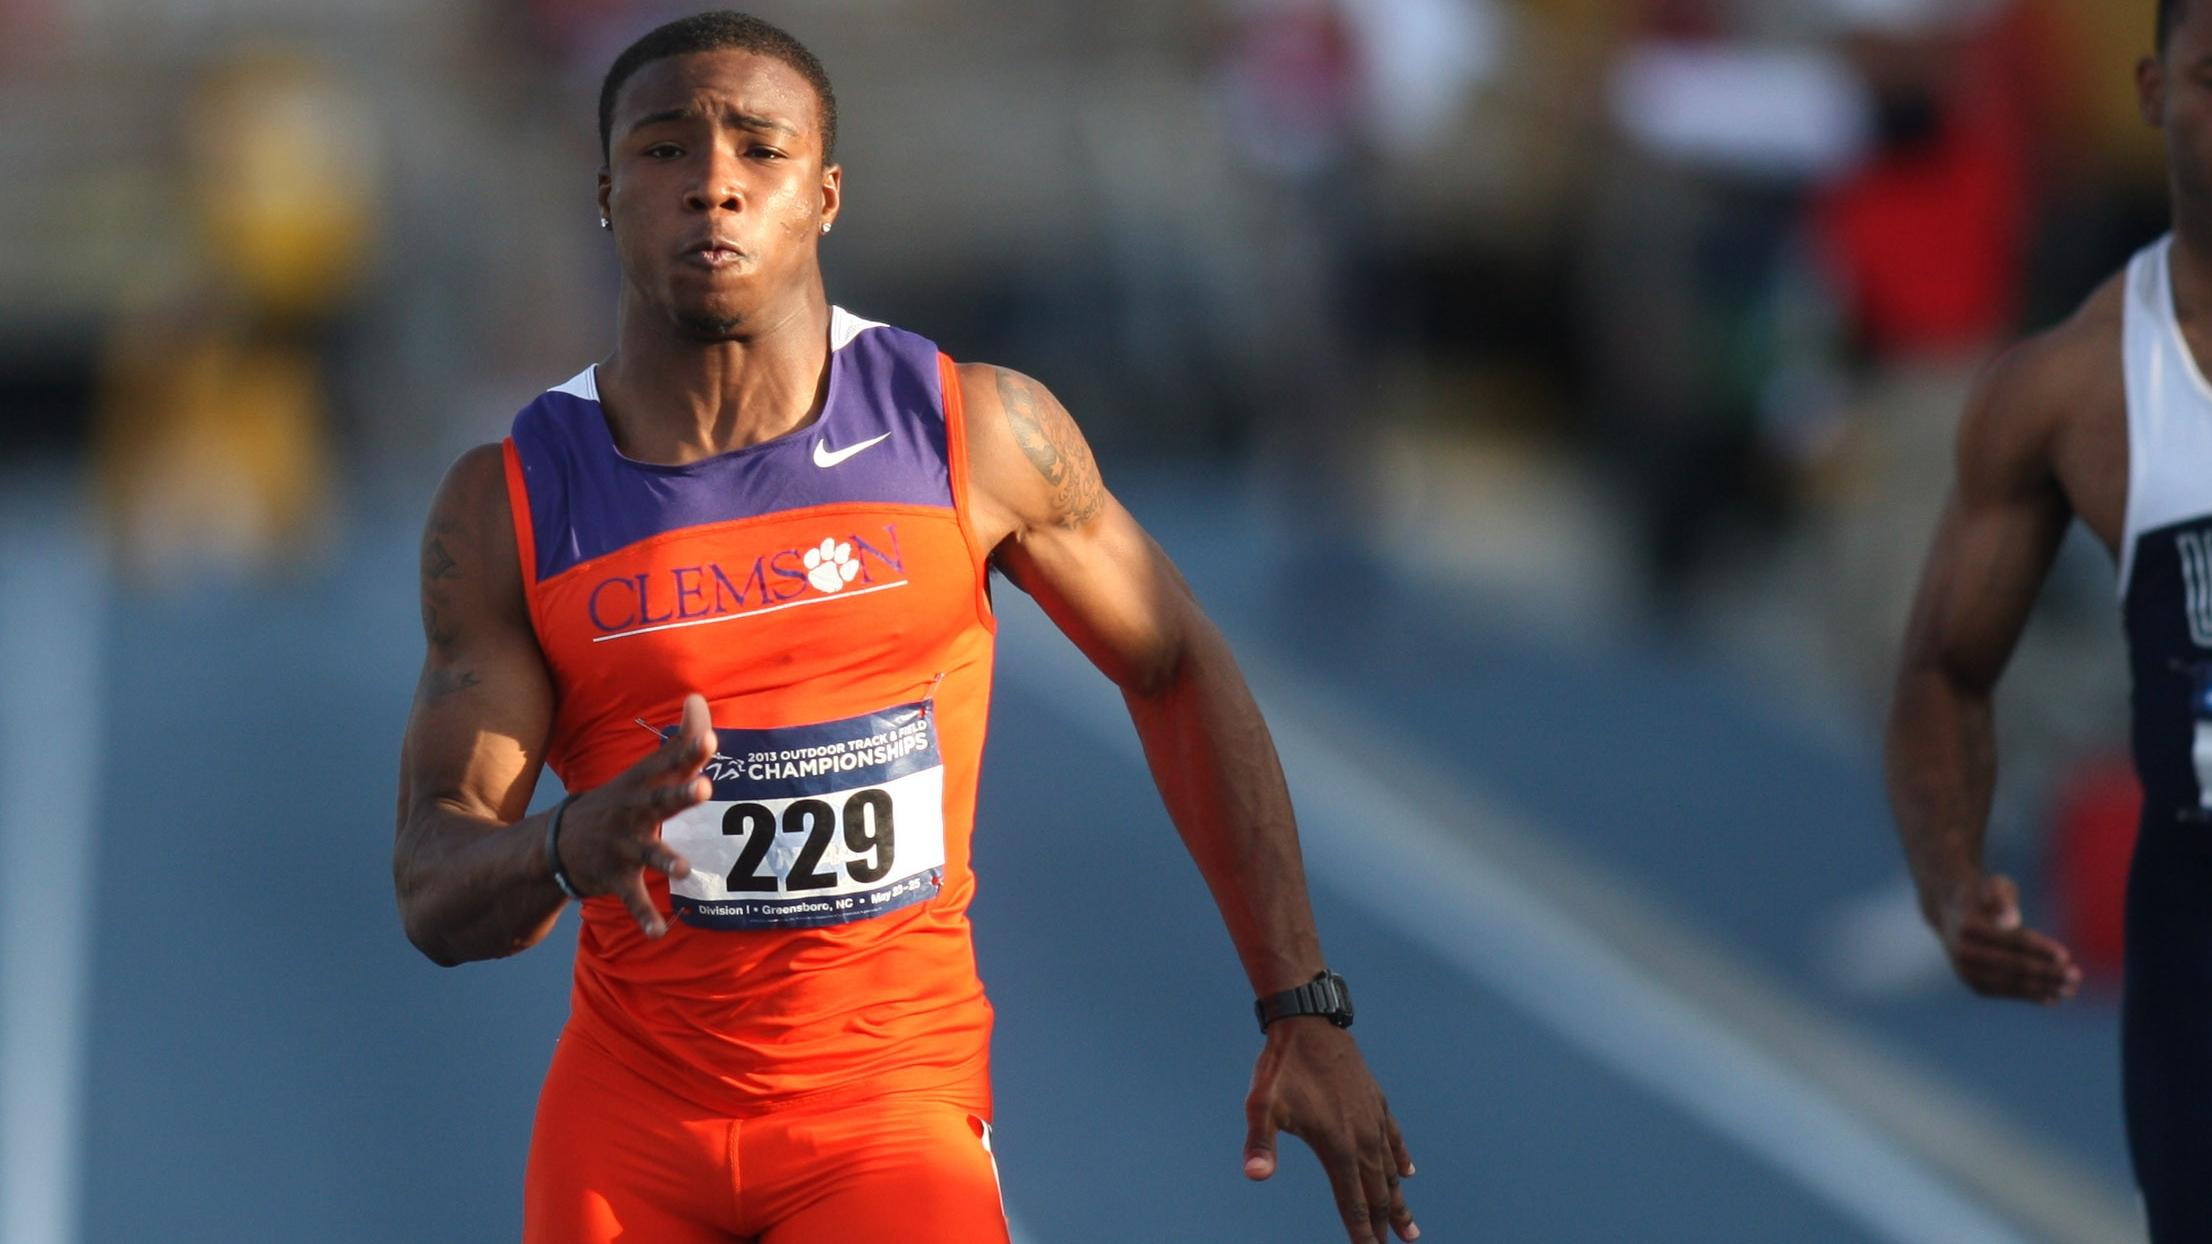 Hester, Land To Represent U.S. in Pan American Junior Championships